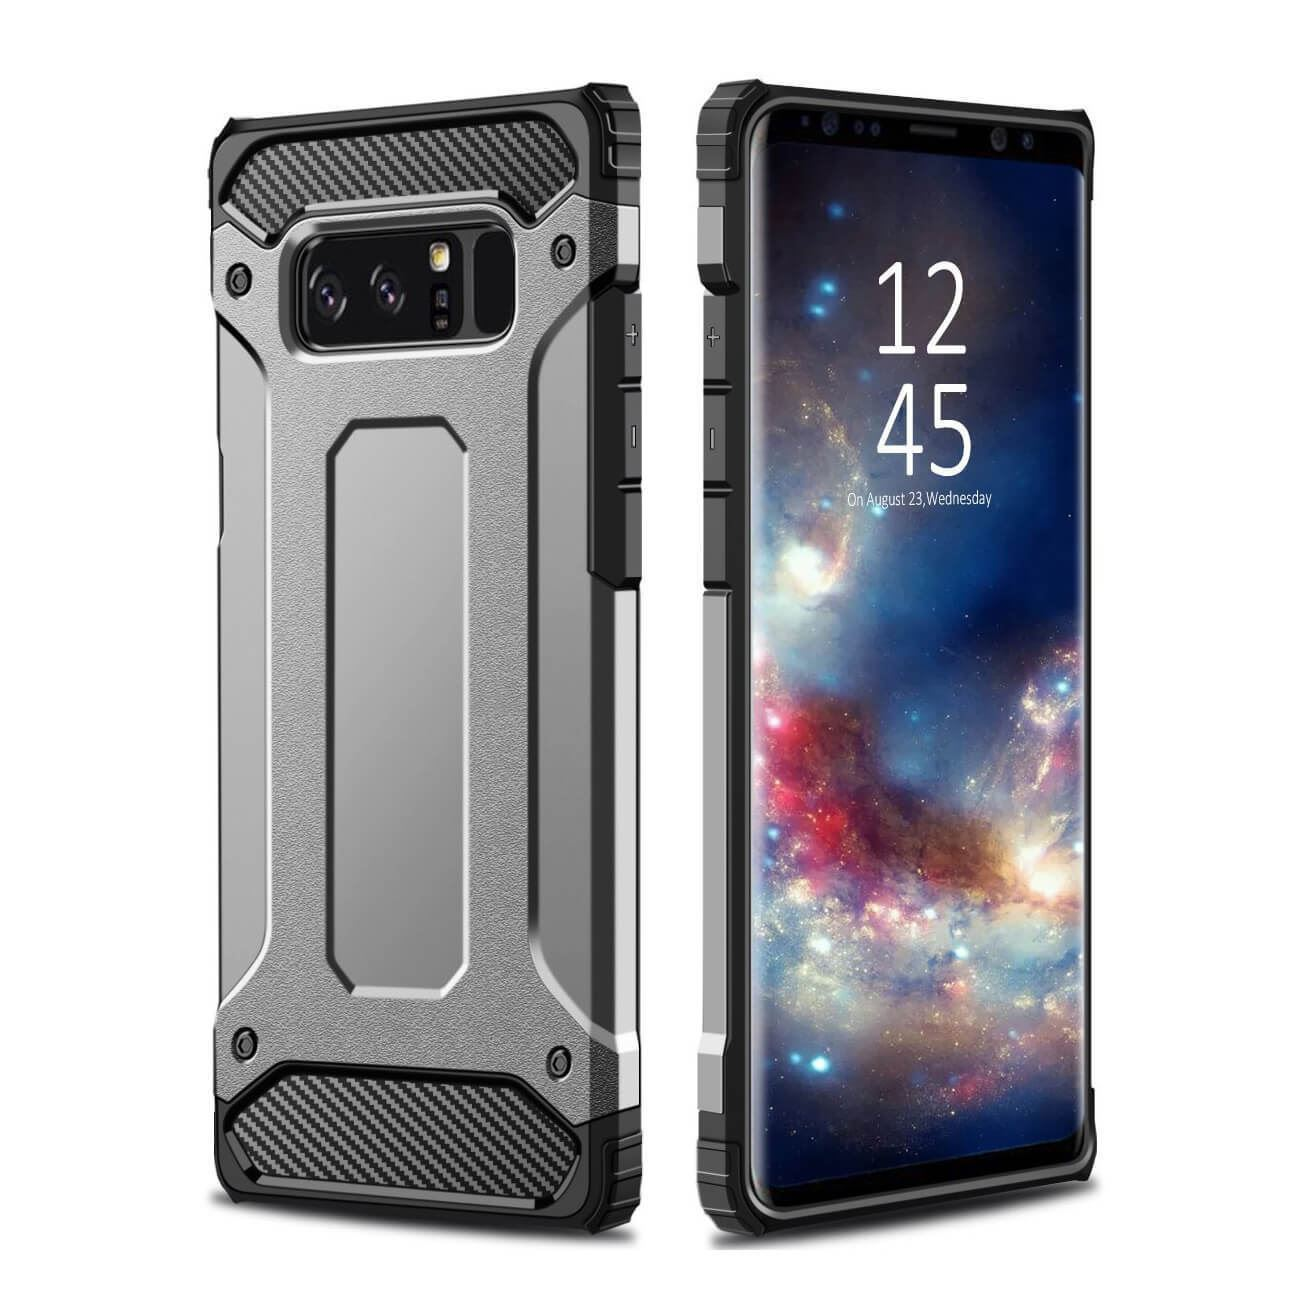 Hybrid-Armor-Shockproof-Rugged-Bumper-Case-For-Samsung-Galaxy-S7-Edge-S8-Note-S9 縮圖 28